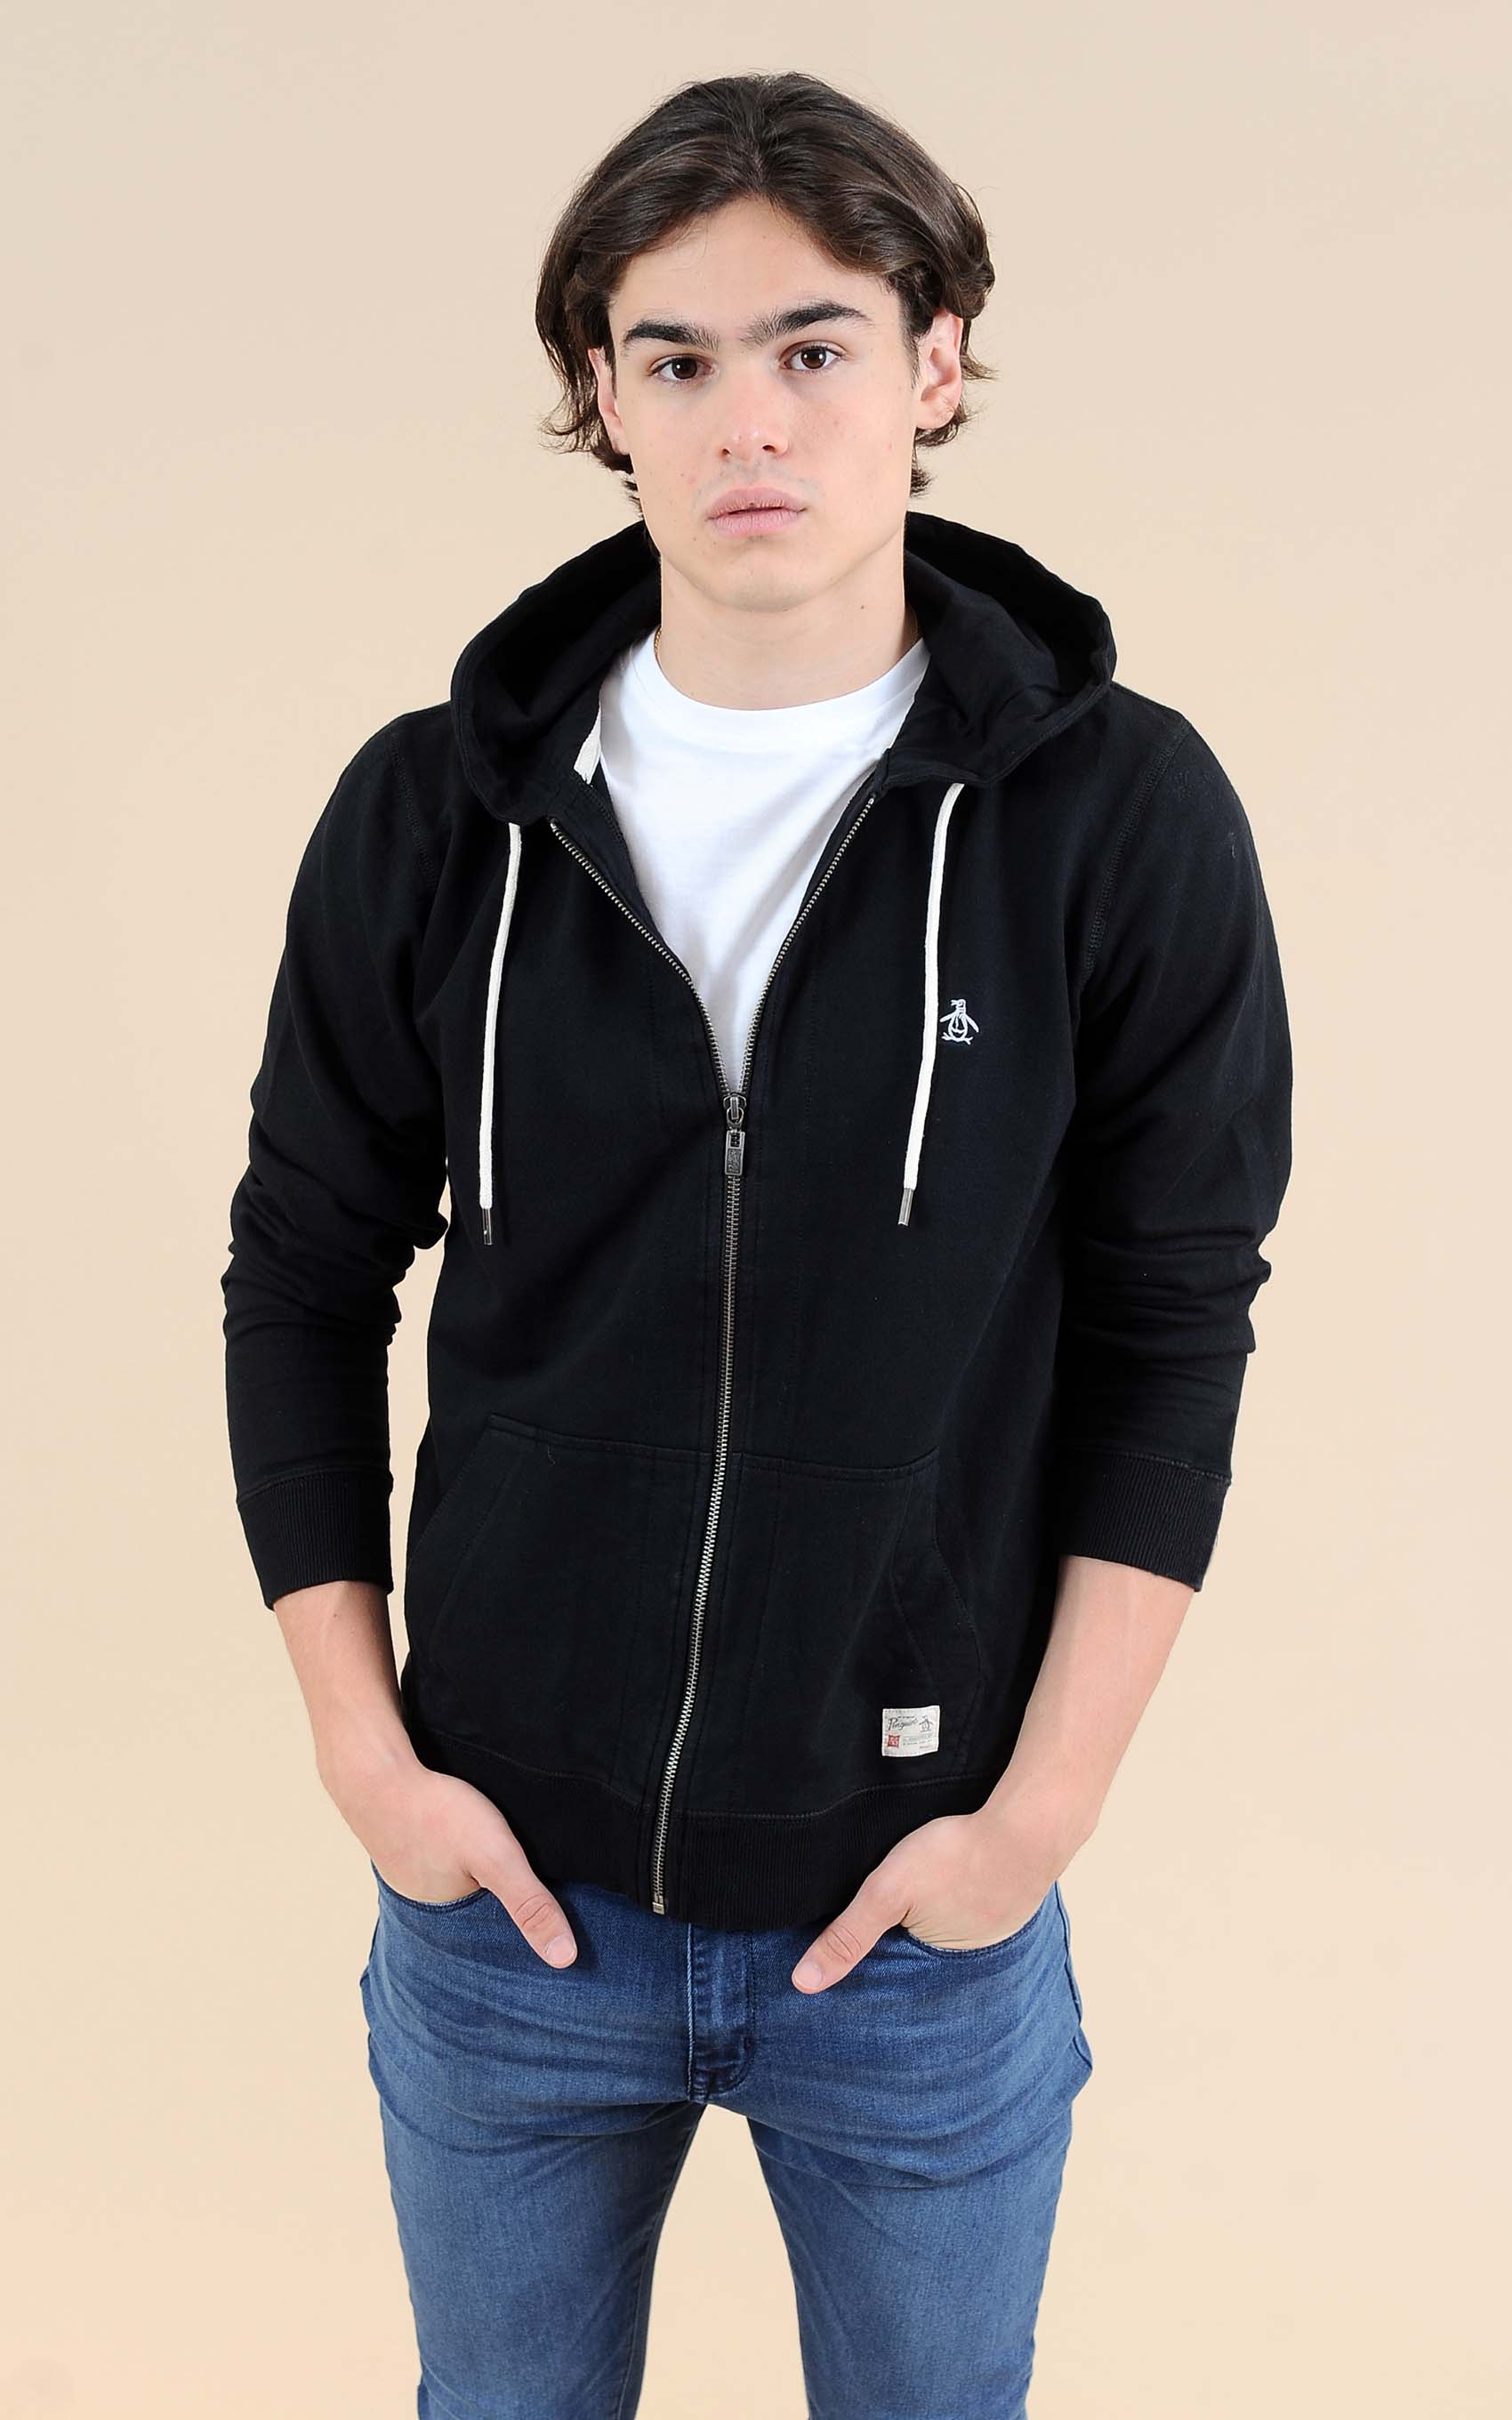 penguin_basic-hoody_43-18-2021__picture-17848